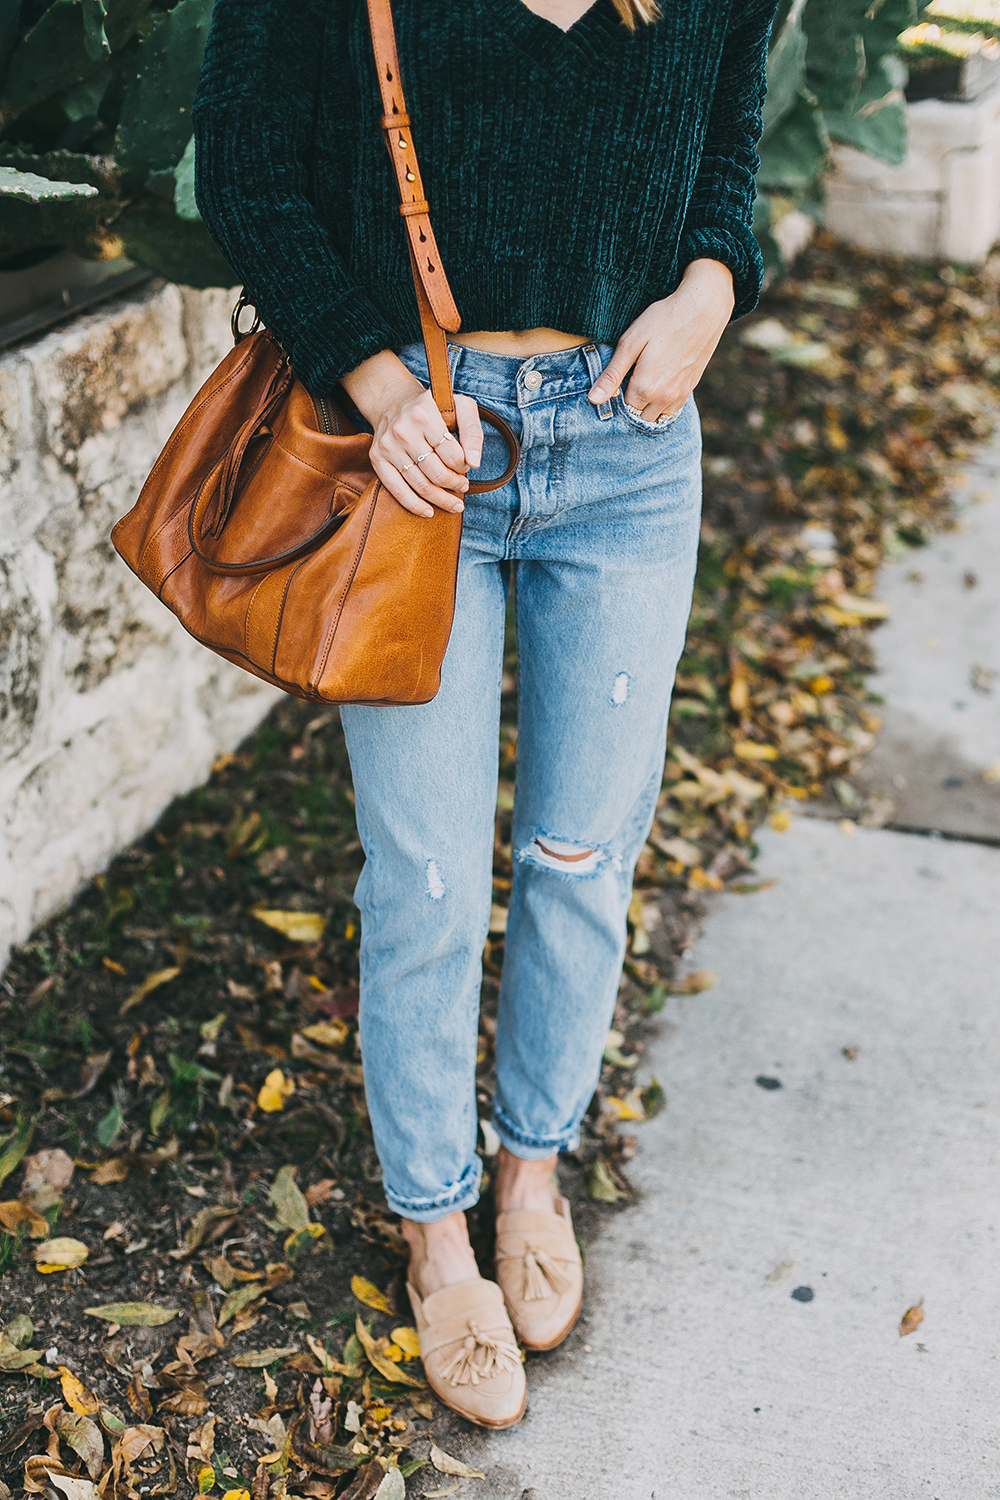 livvyland-blog-olivia-watson-austin-texas-fashion-style-blogger-teal-cropped-sweater-tassel-slides-5